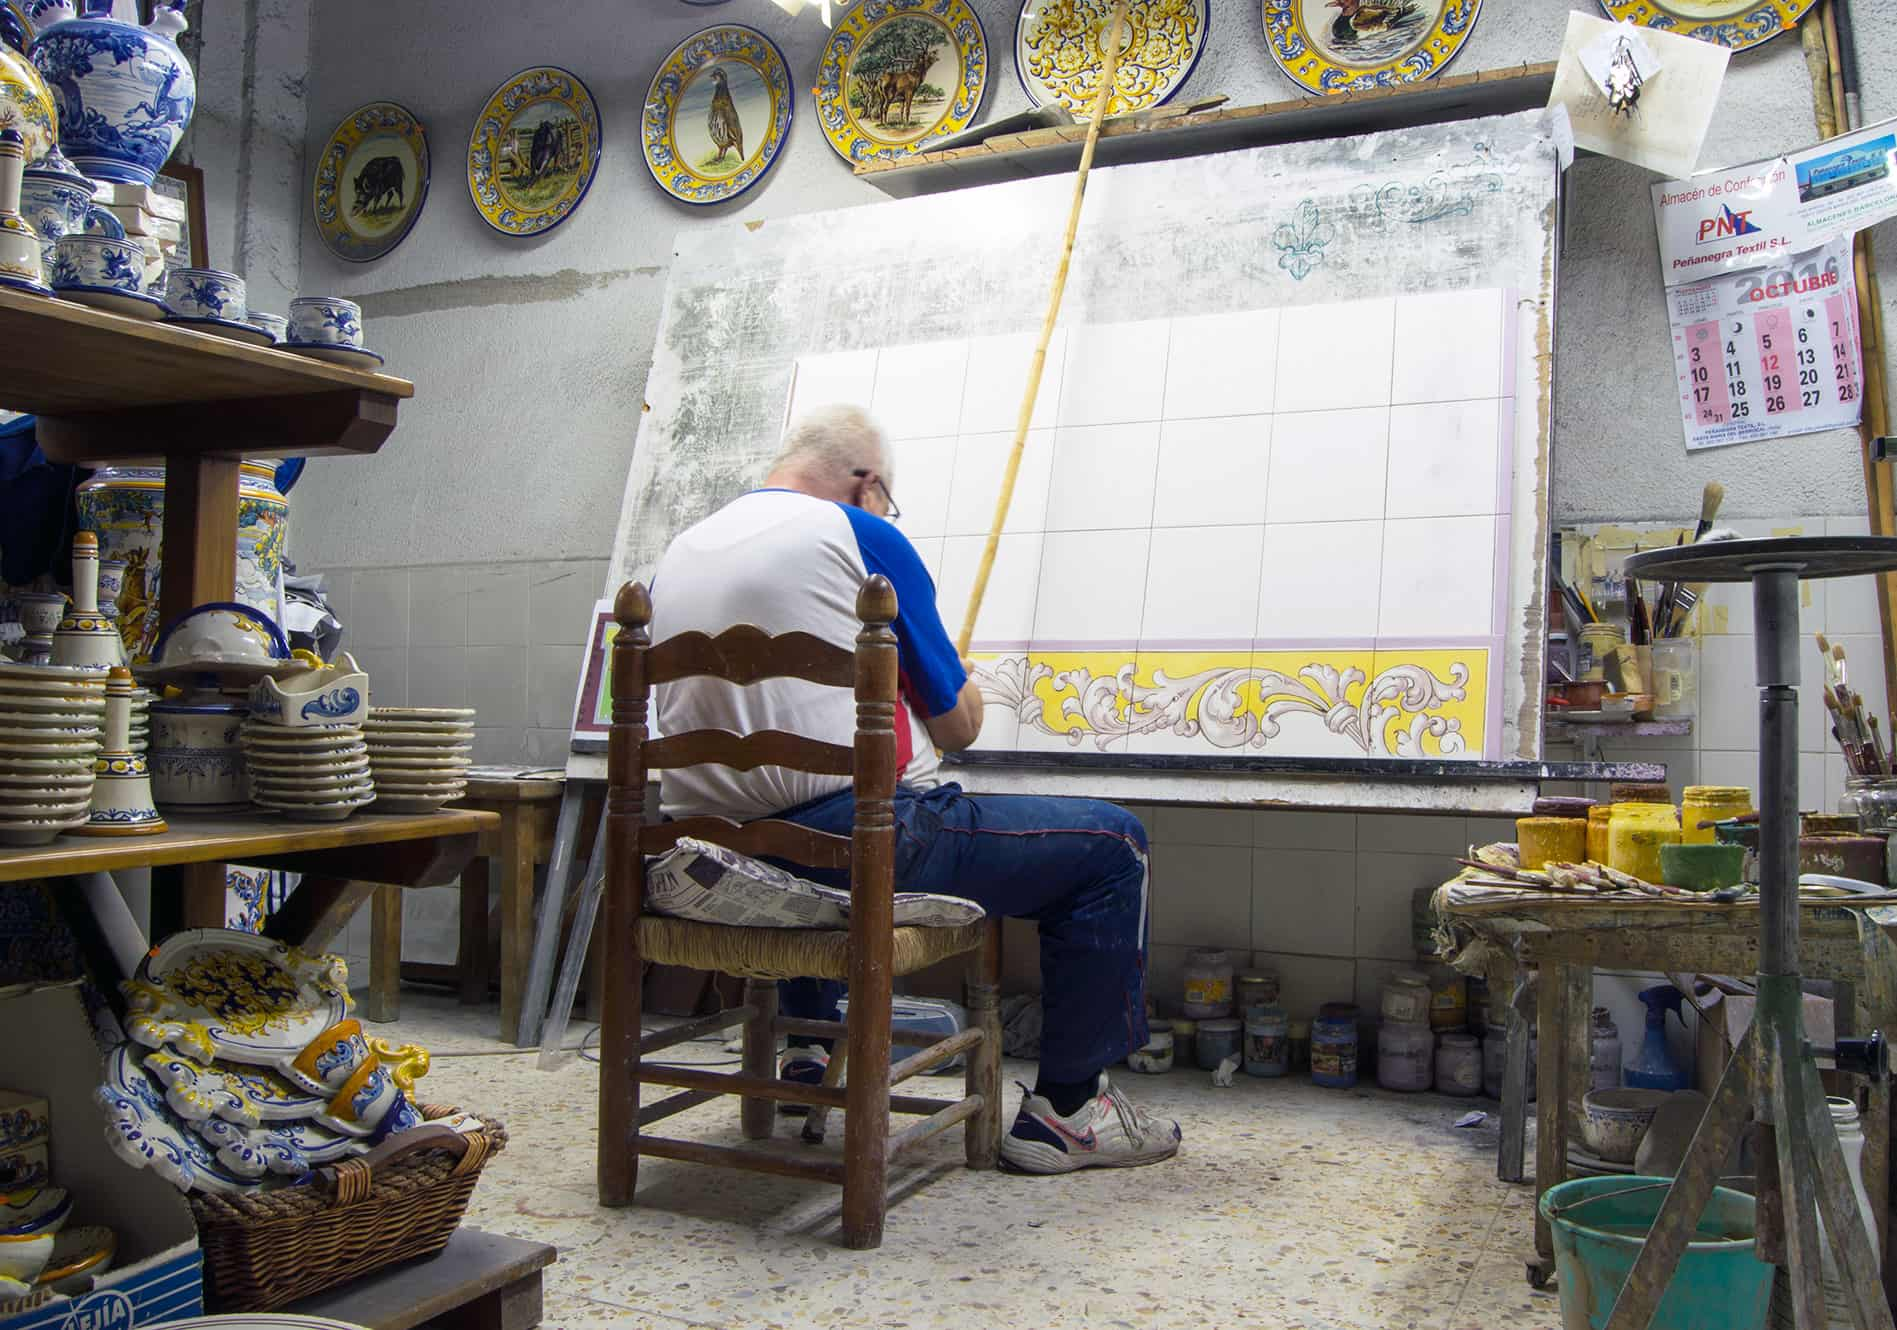 Ceramic painter working on tiles in his workshop in Talavera de la Reina